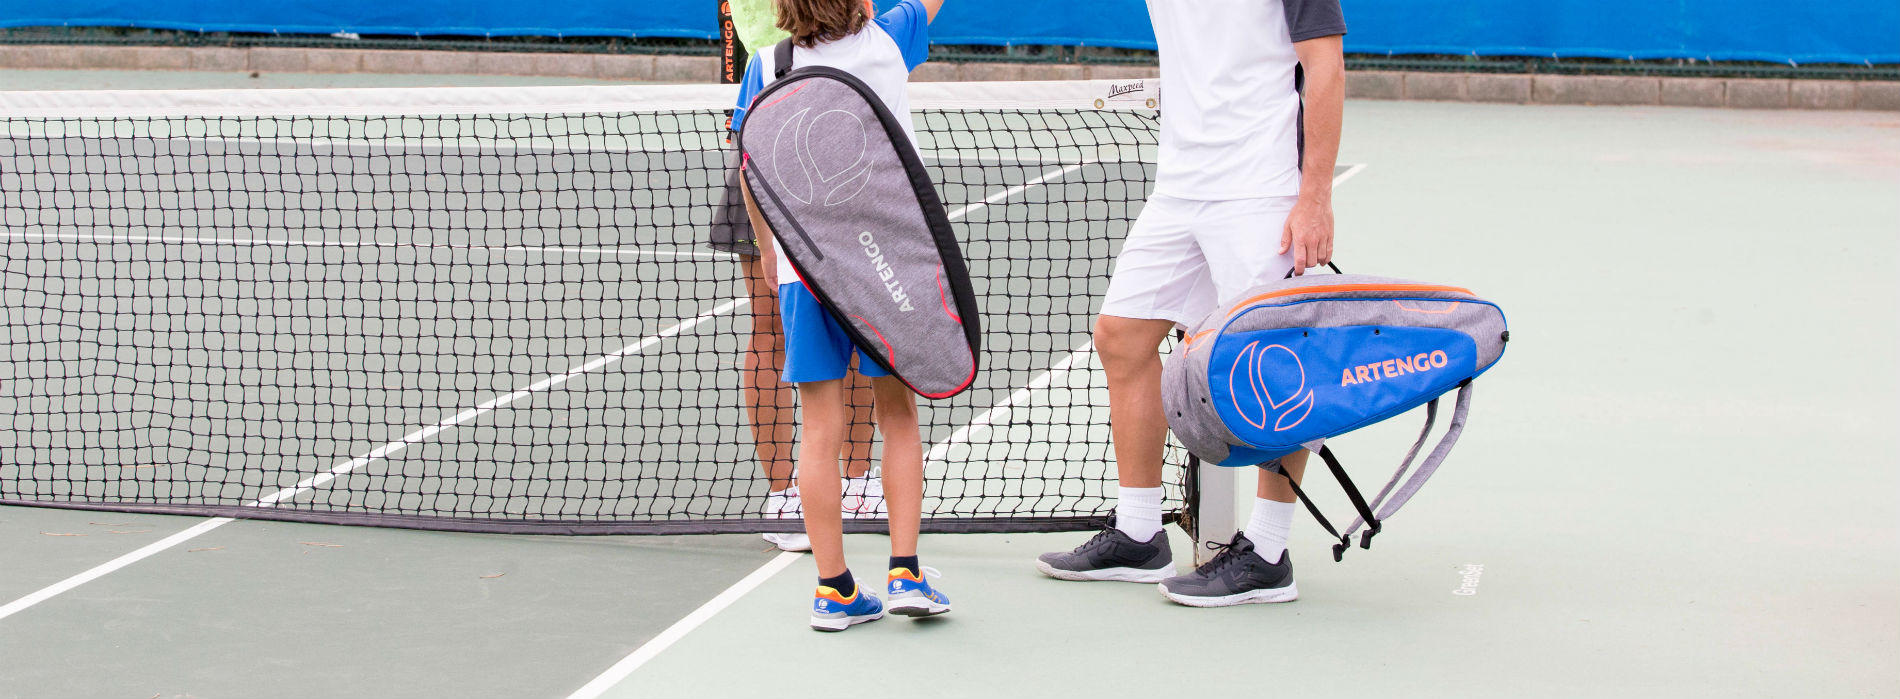 How to Choose Your Tennis Bag?